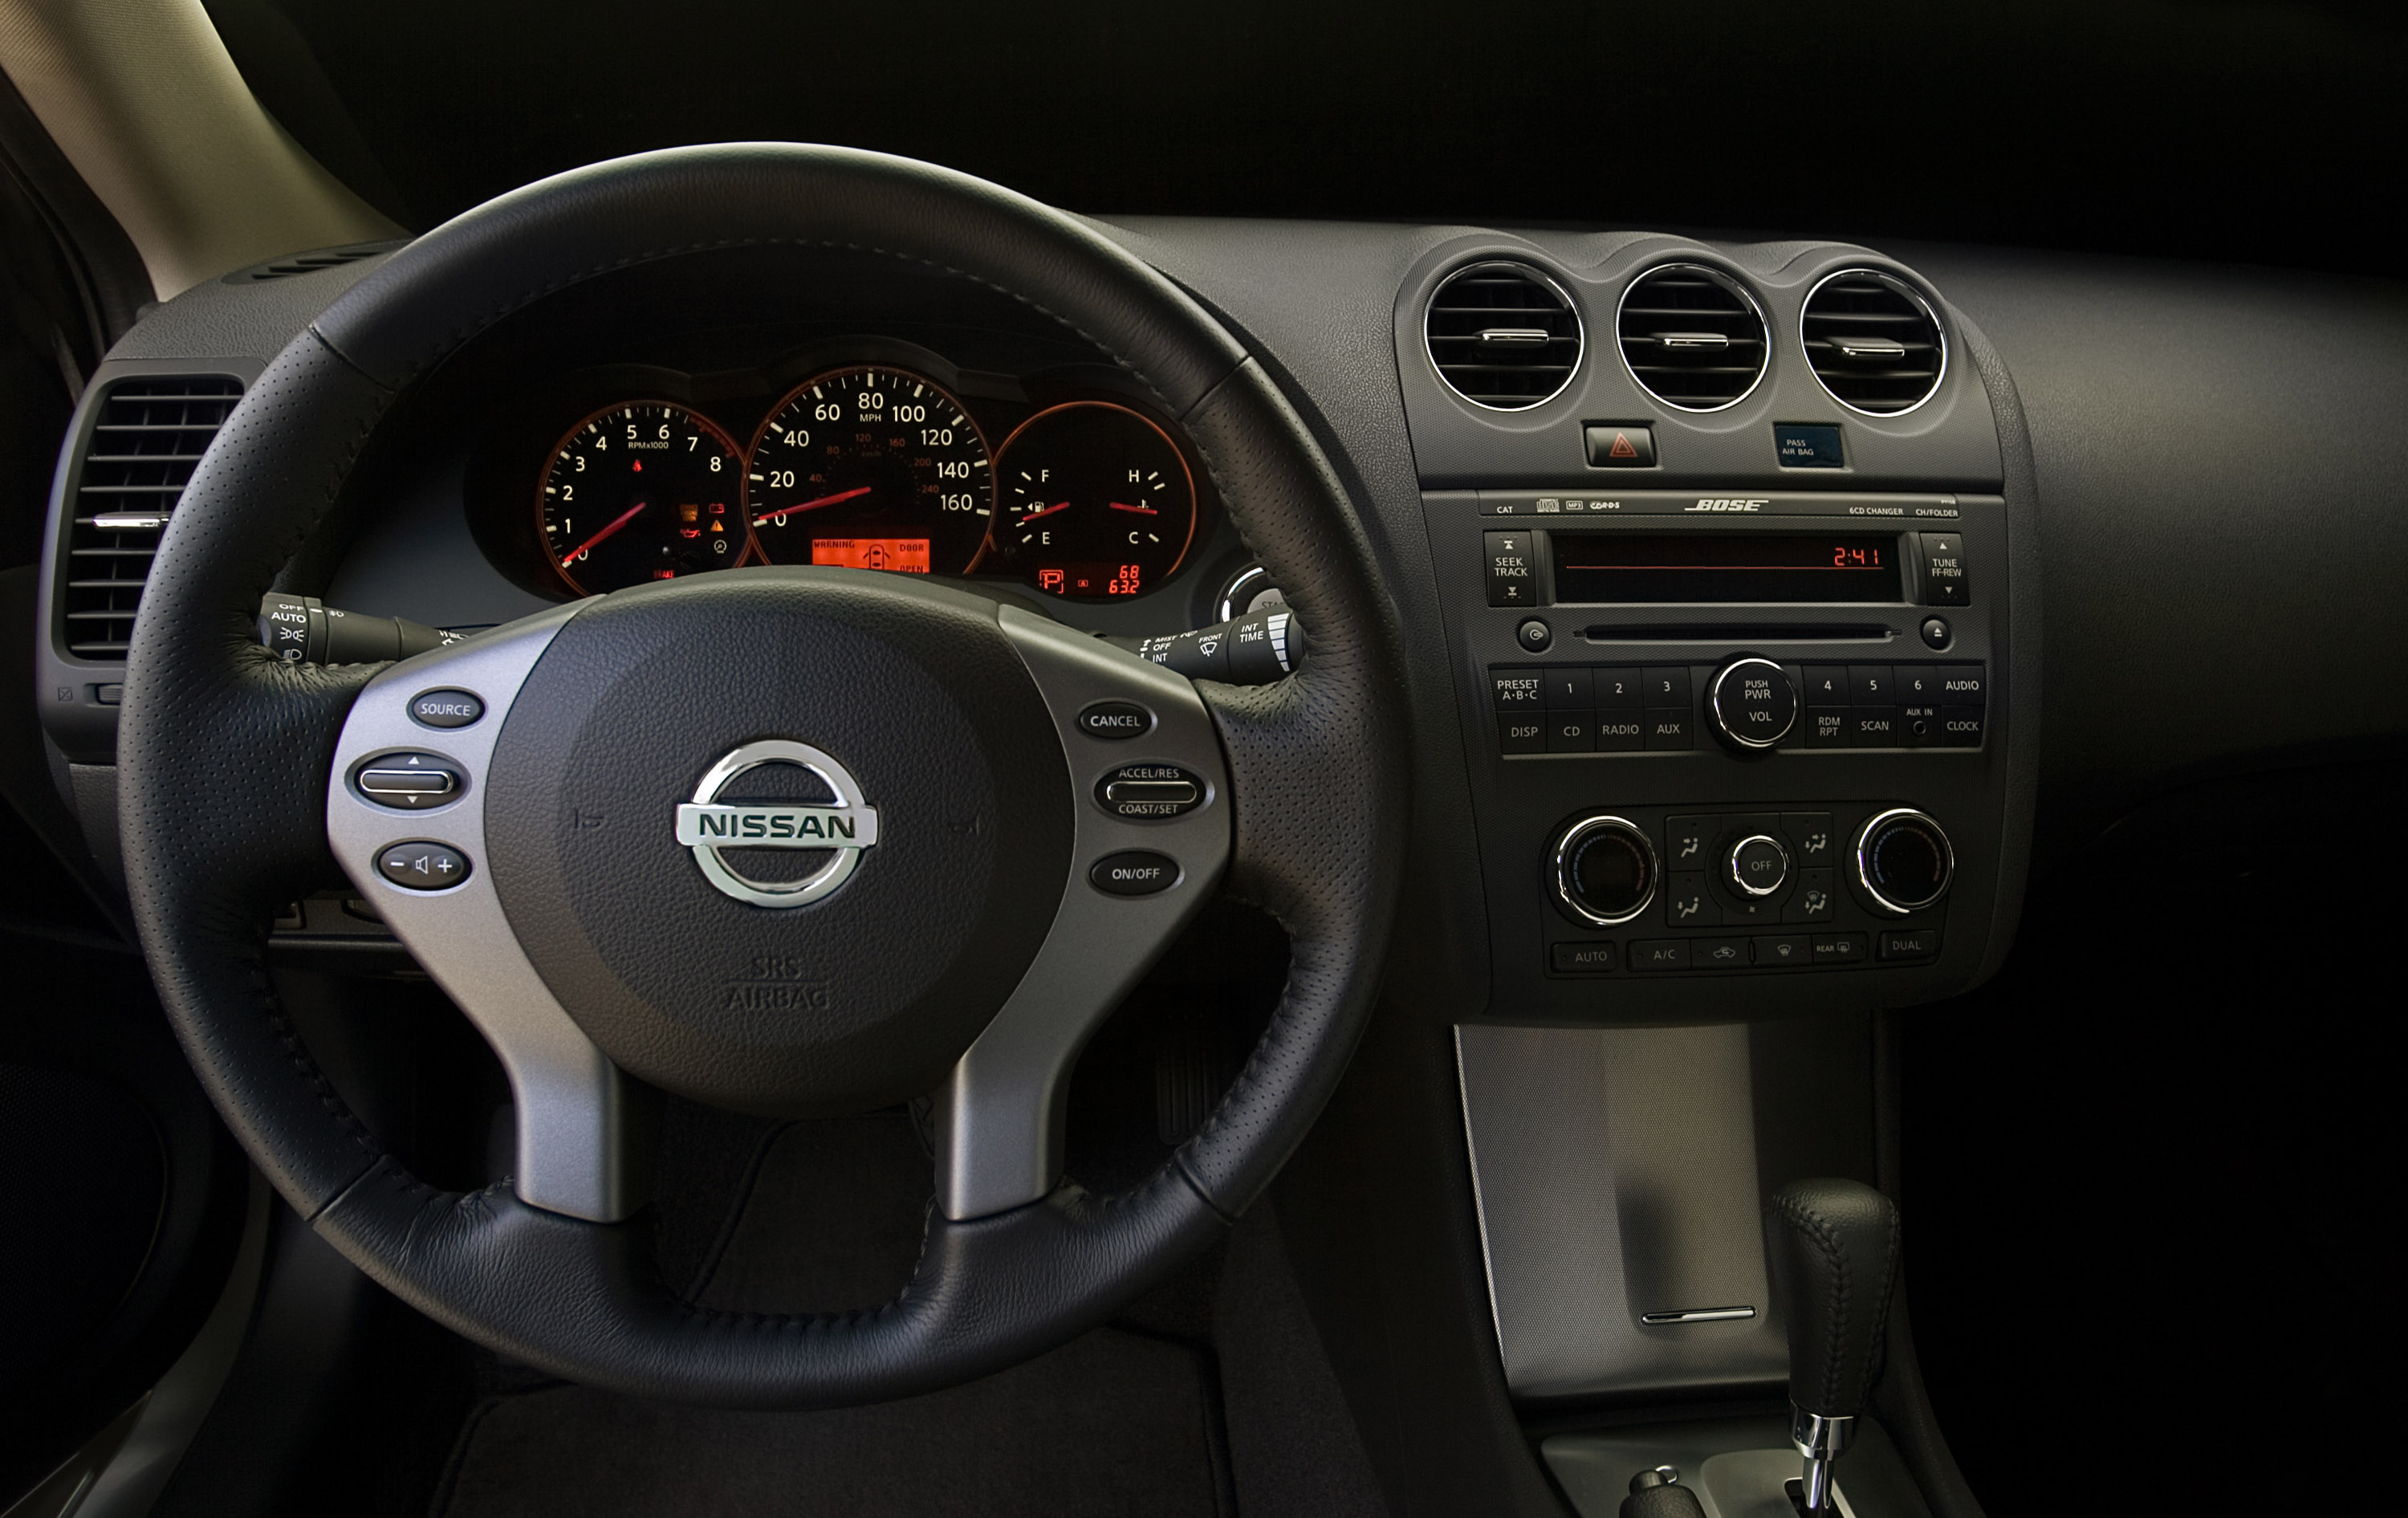 2009 nissan altima coupe demands attention with aggressive styling nissan altima coupe 2008 vanachro Image collections